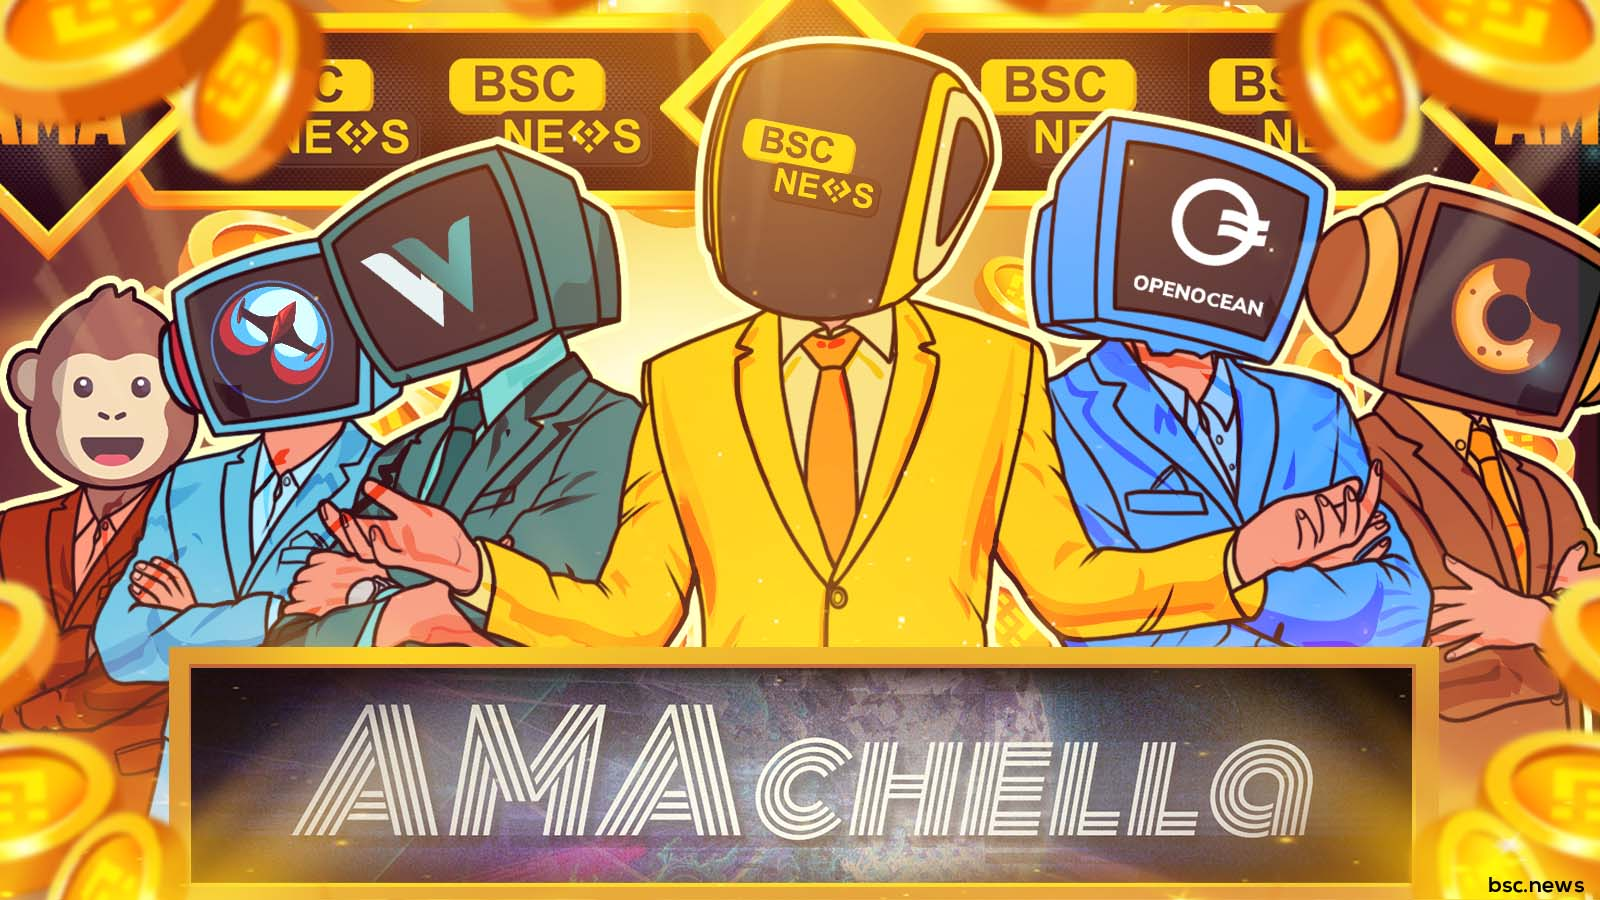 """BSCNews Hosts 1st """"AMAchella,"""" an Ask me Anything with Seven of the Largest Decentralized Exchanges"""